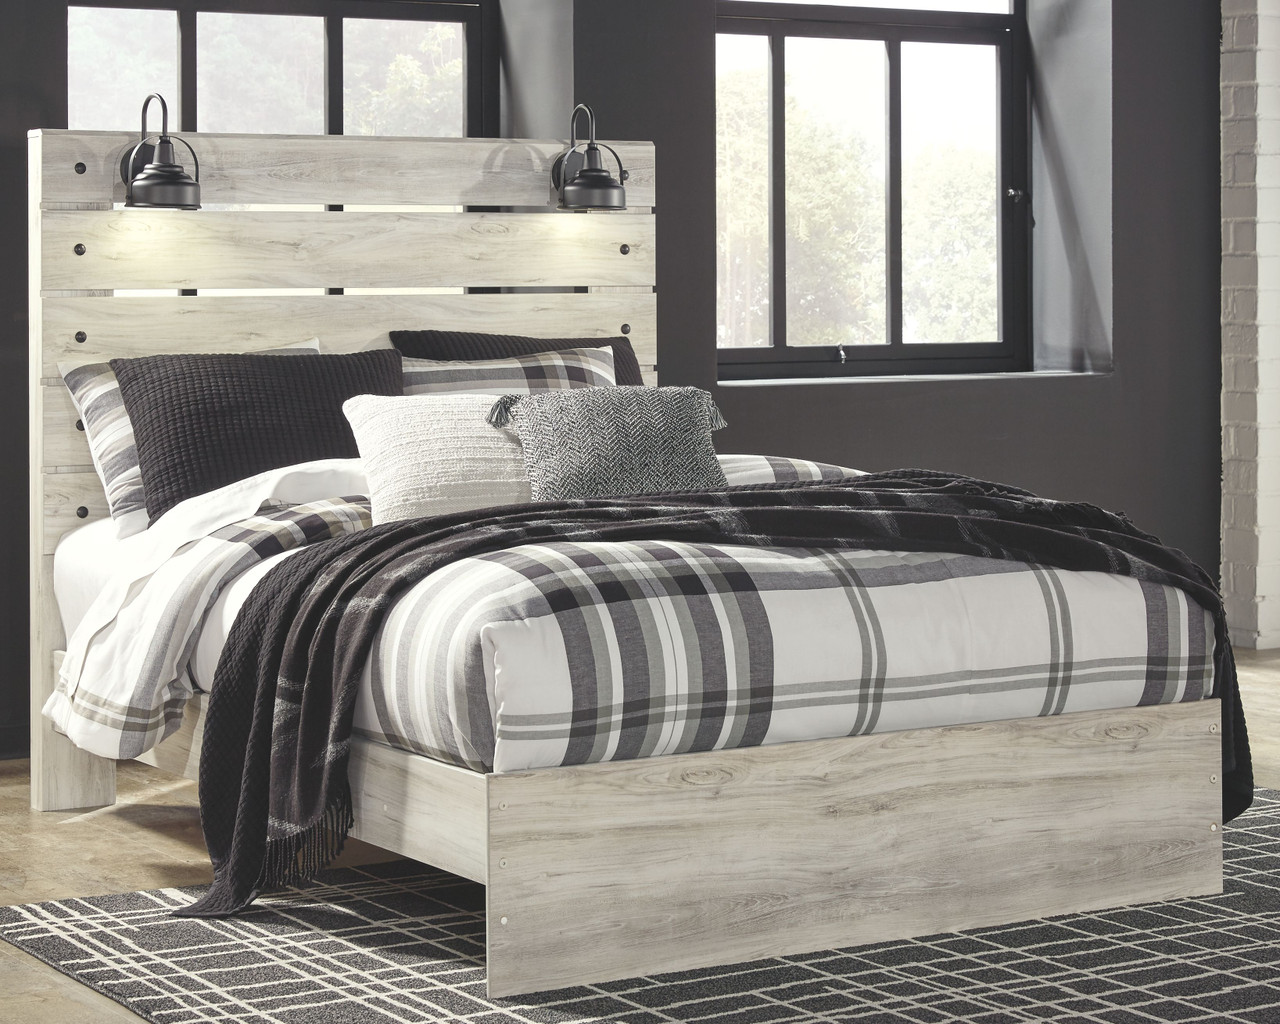 Picture of: The Cambeck Whitewash Queen Panel Bed Available At Royal Star Furniture Serving St Paul Mn